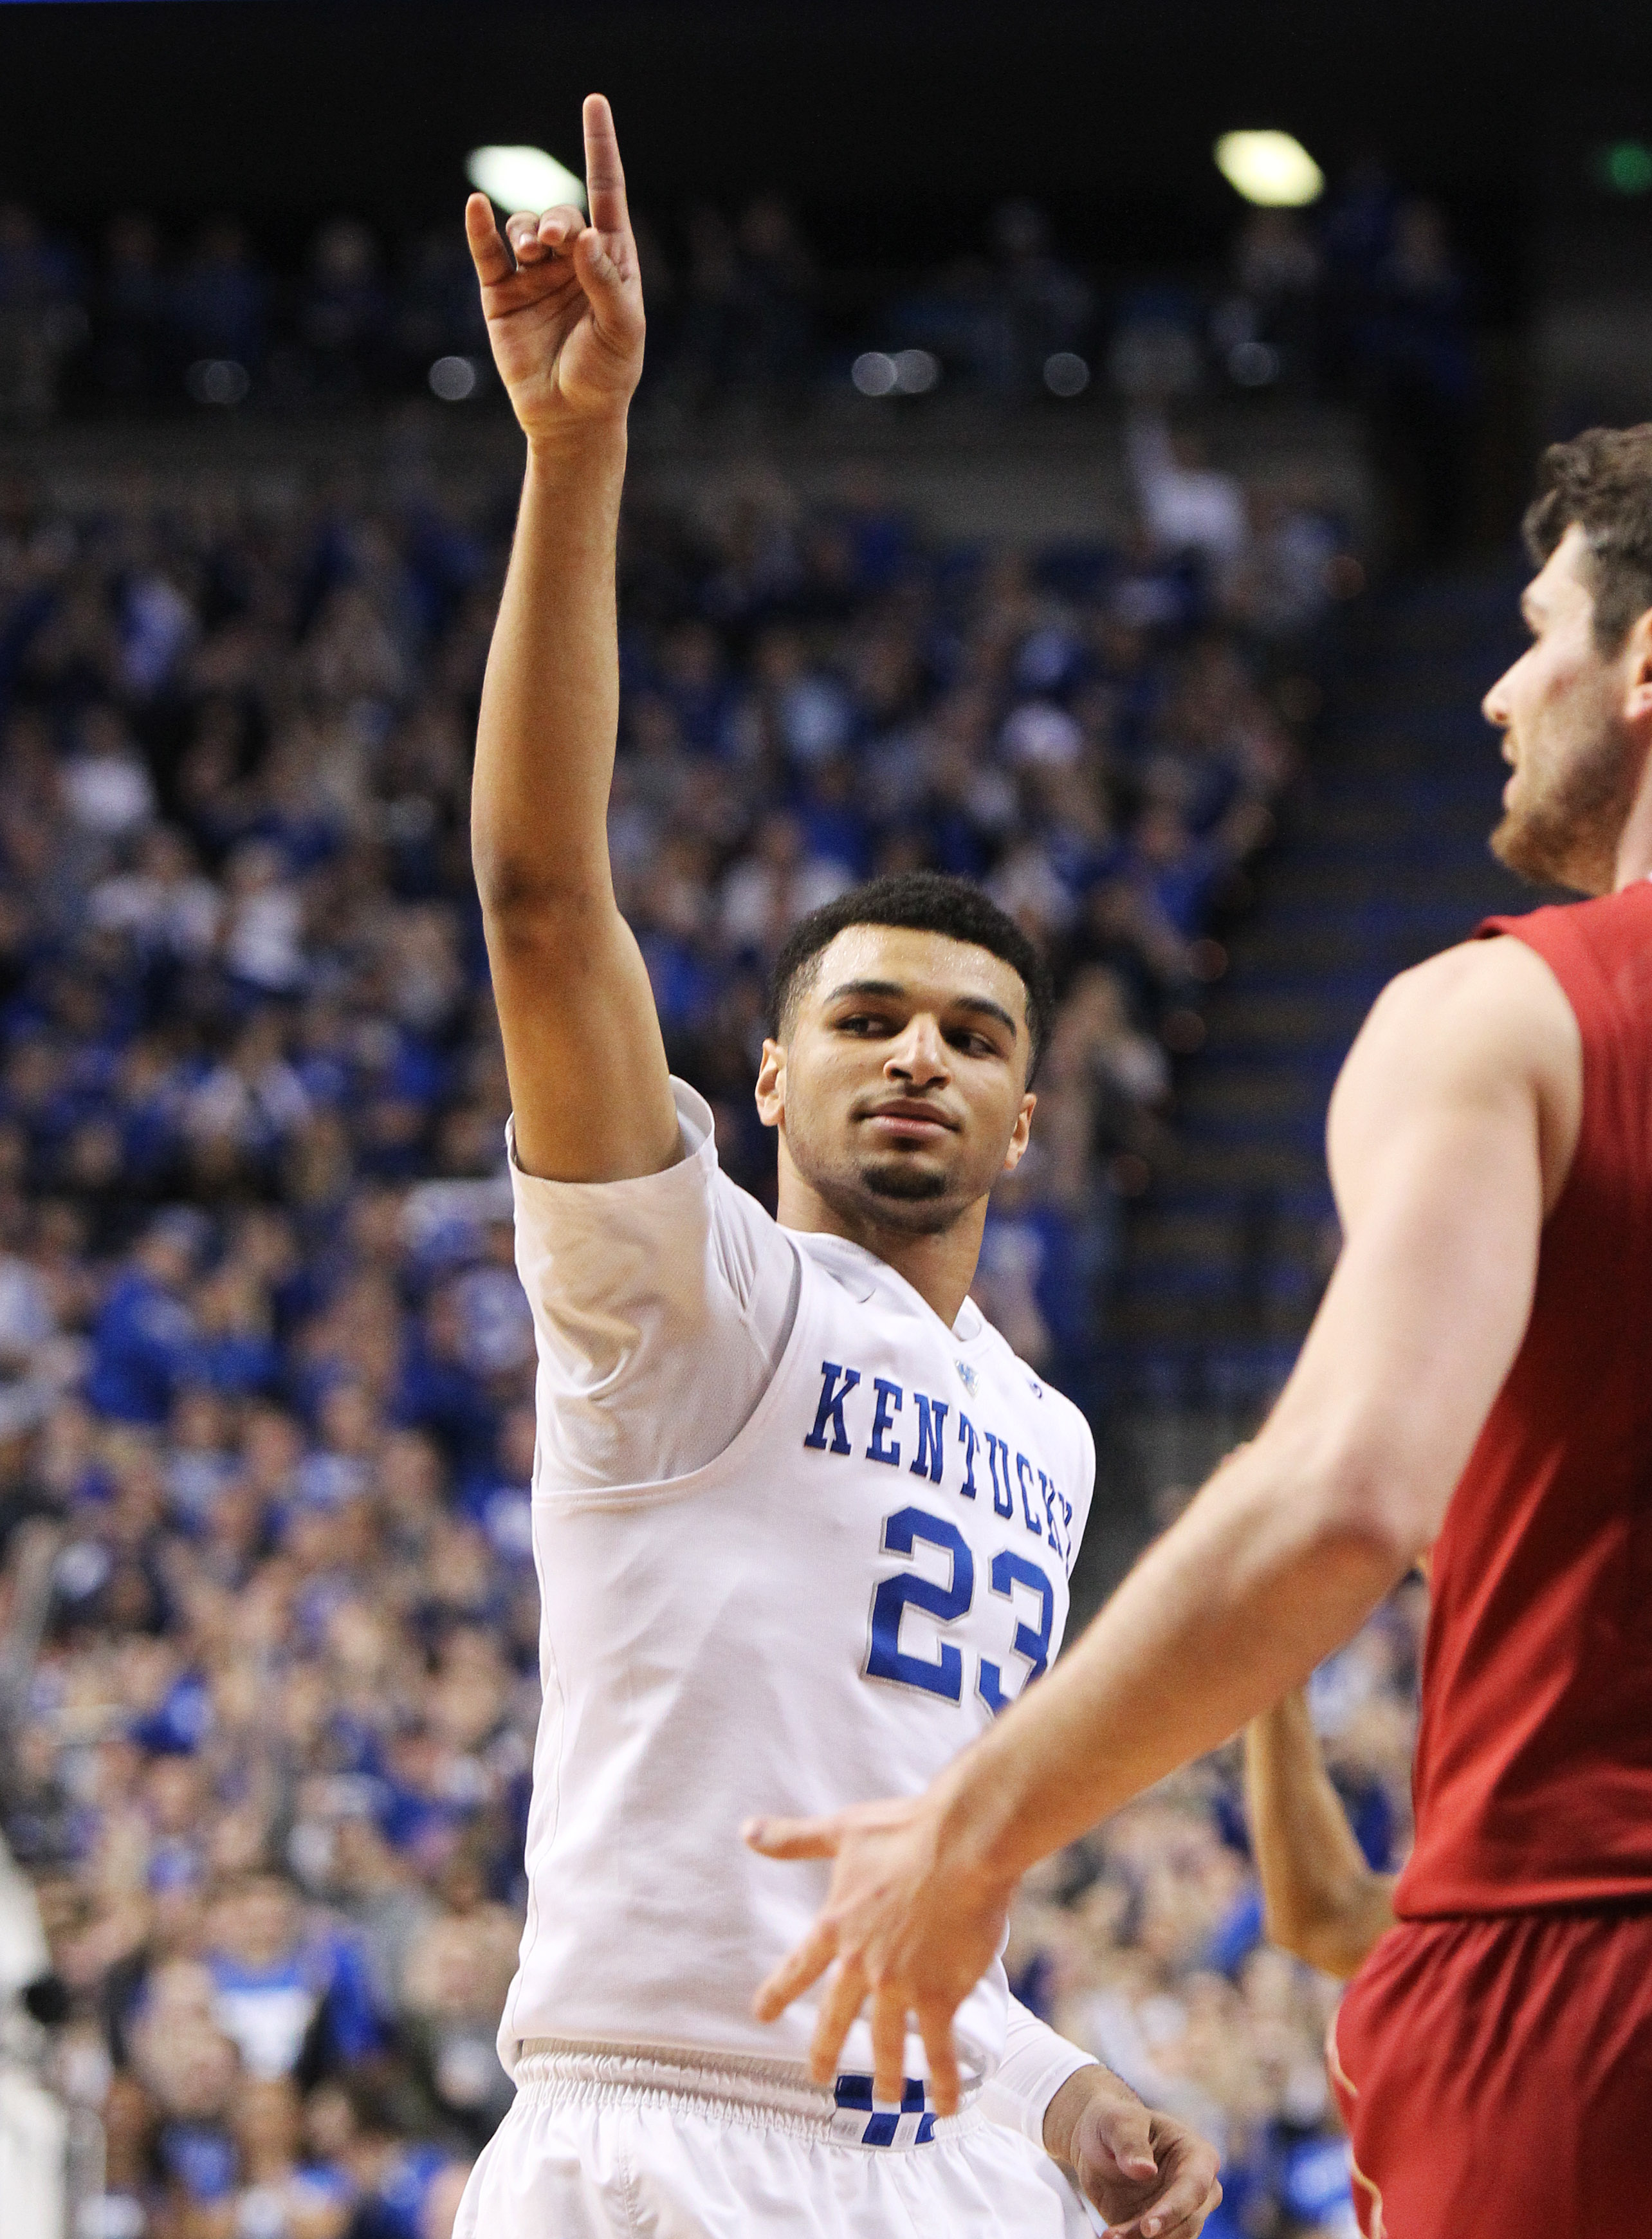 Kentucky's Jamal Murray reacts to his three-point shots during the first half of an NCAA college basketball game against Alabama on Tuesday, Feb. 23, 2016, in Lexington, Ky. (AP Photo/James Crisp)